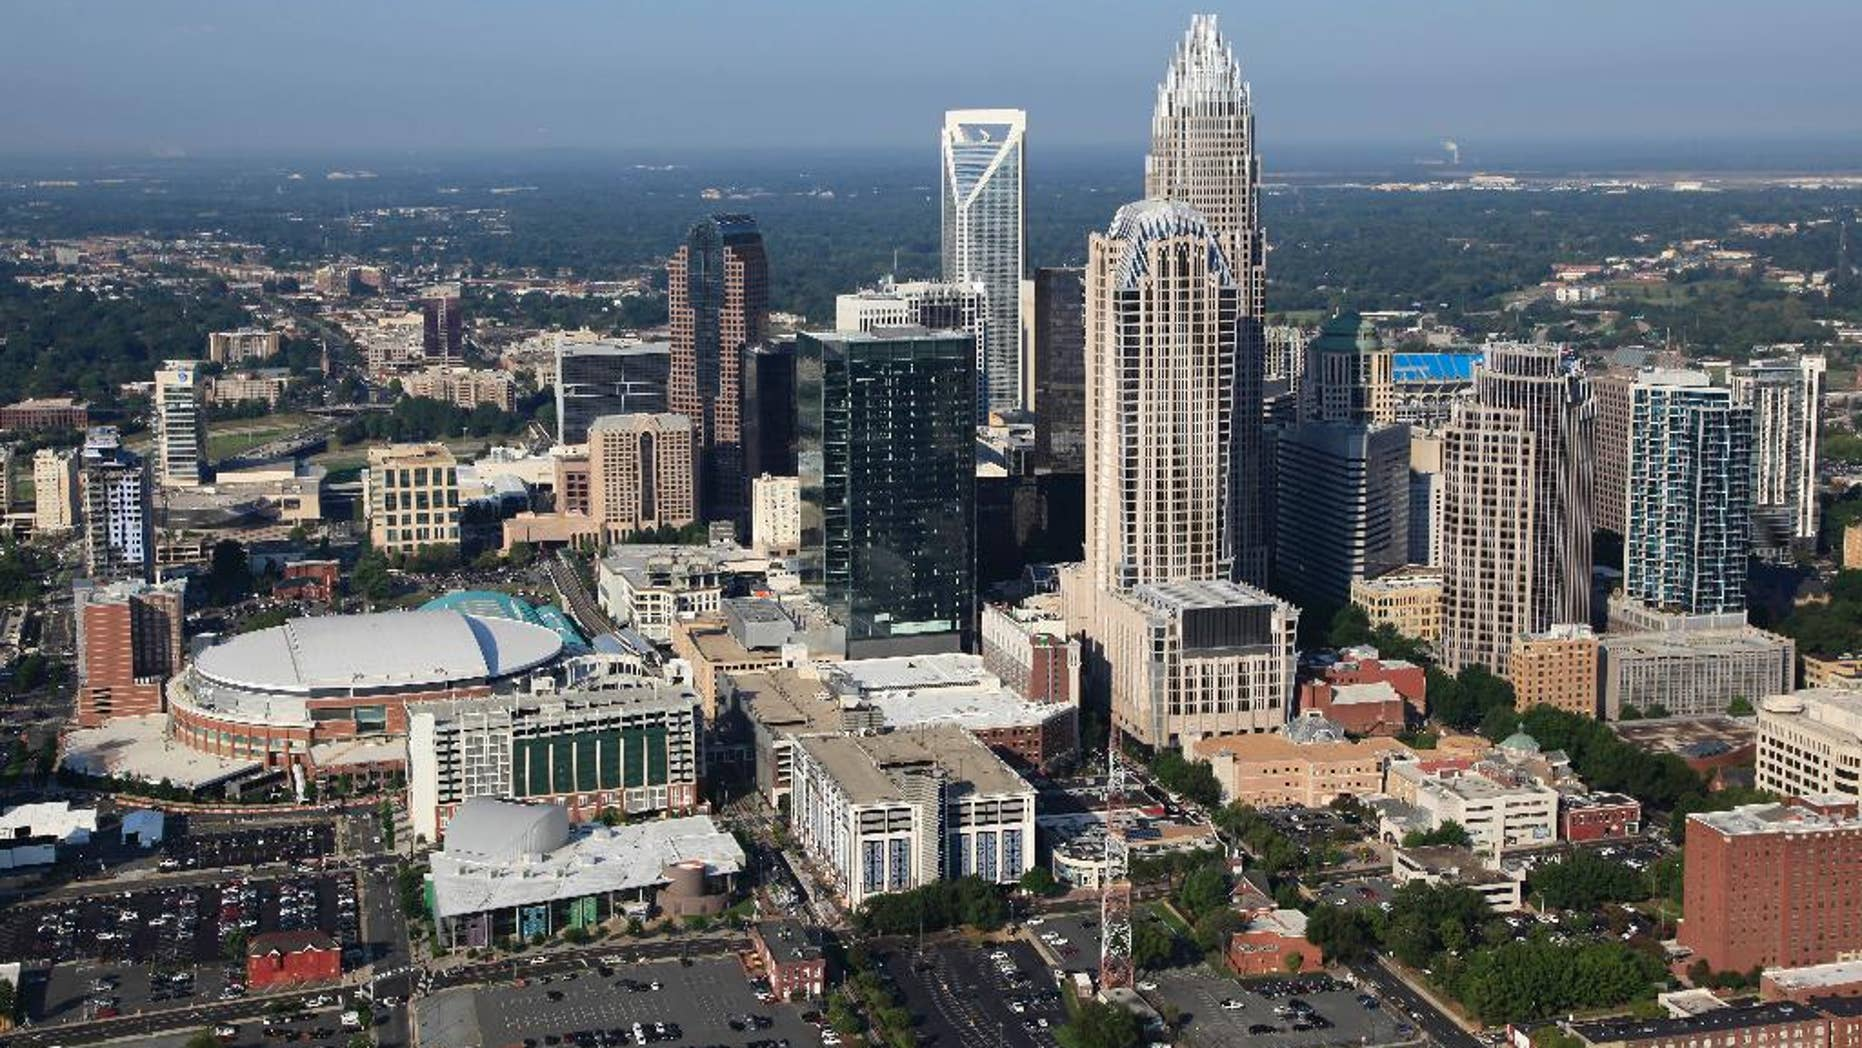 In this Aug. 16, 2012 file photo, the Time Warner Cable Arena is shown on left of downtown Charlotte, N.C.    To much of the world, Charlotte is the Queen City, a gleaming downtown, state-of-the-art stadiums, sparkling new mass transit, the nation's banking capital. But a very different Charlotte came into the spotlight in the past few days. Move outside the city's core and there are neighborhoods like the one where a police officer shot and killed a black man, Keith Scott, Sept. 20, 2016, setting off violent protests.(AP Photo/Chuck Burton)